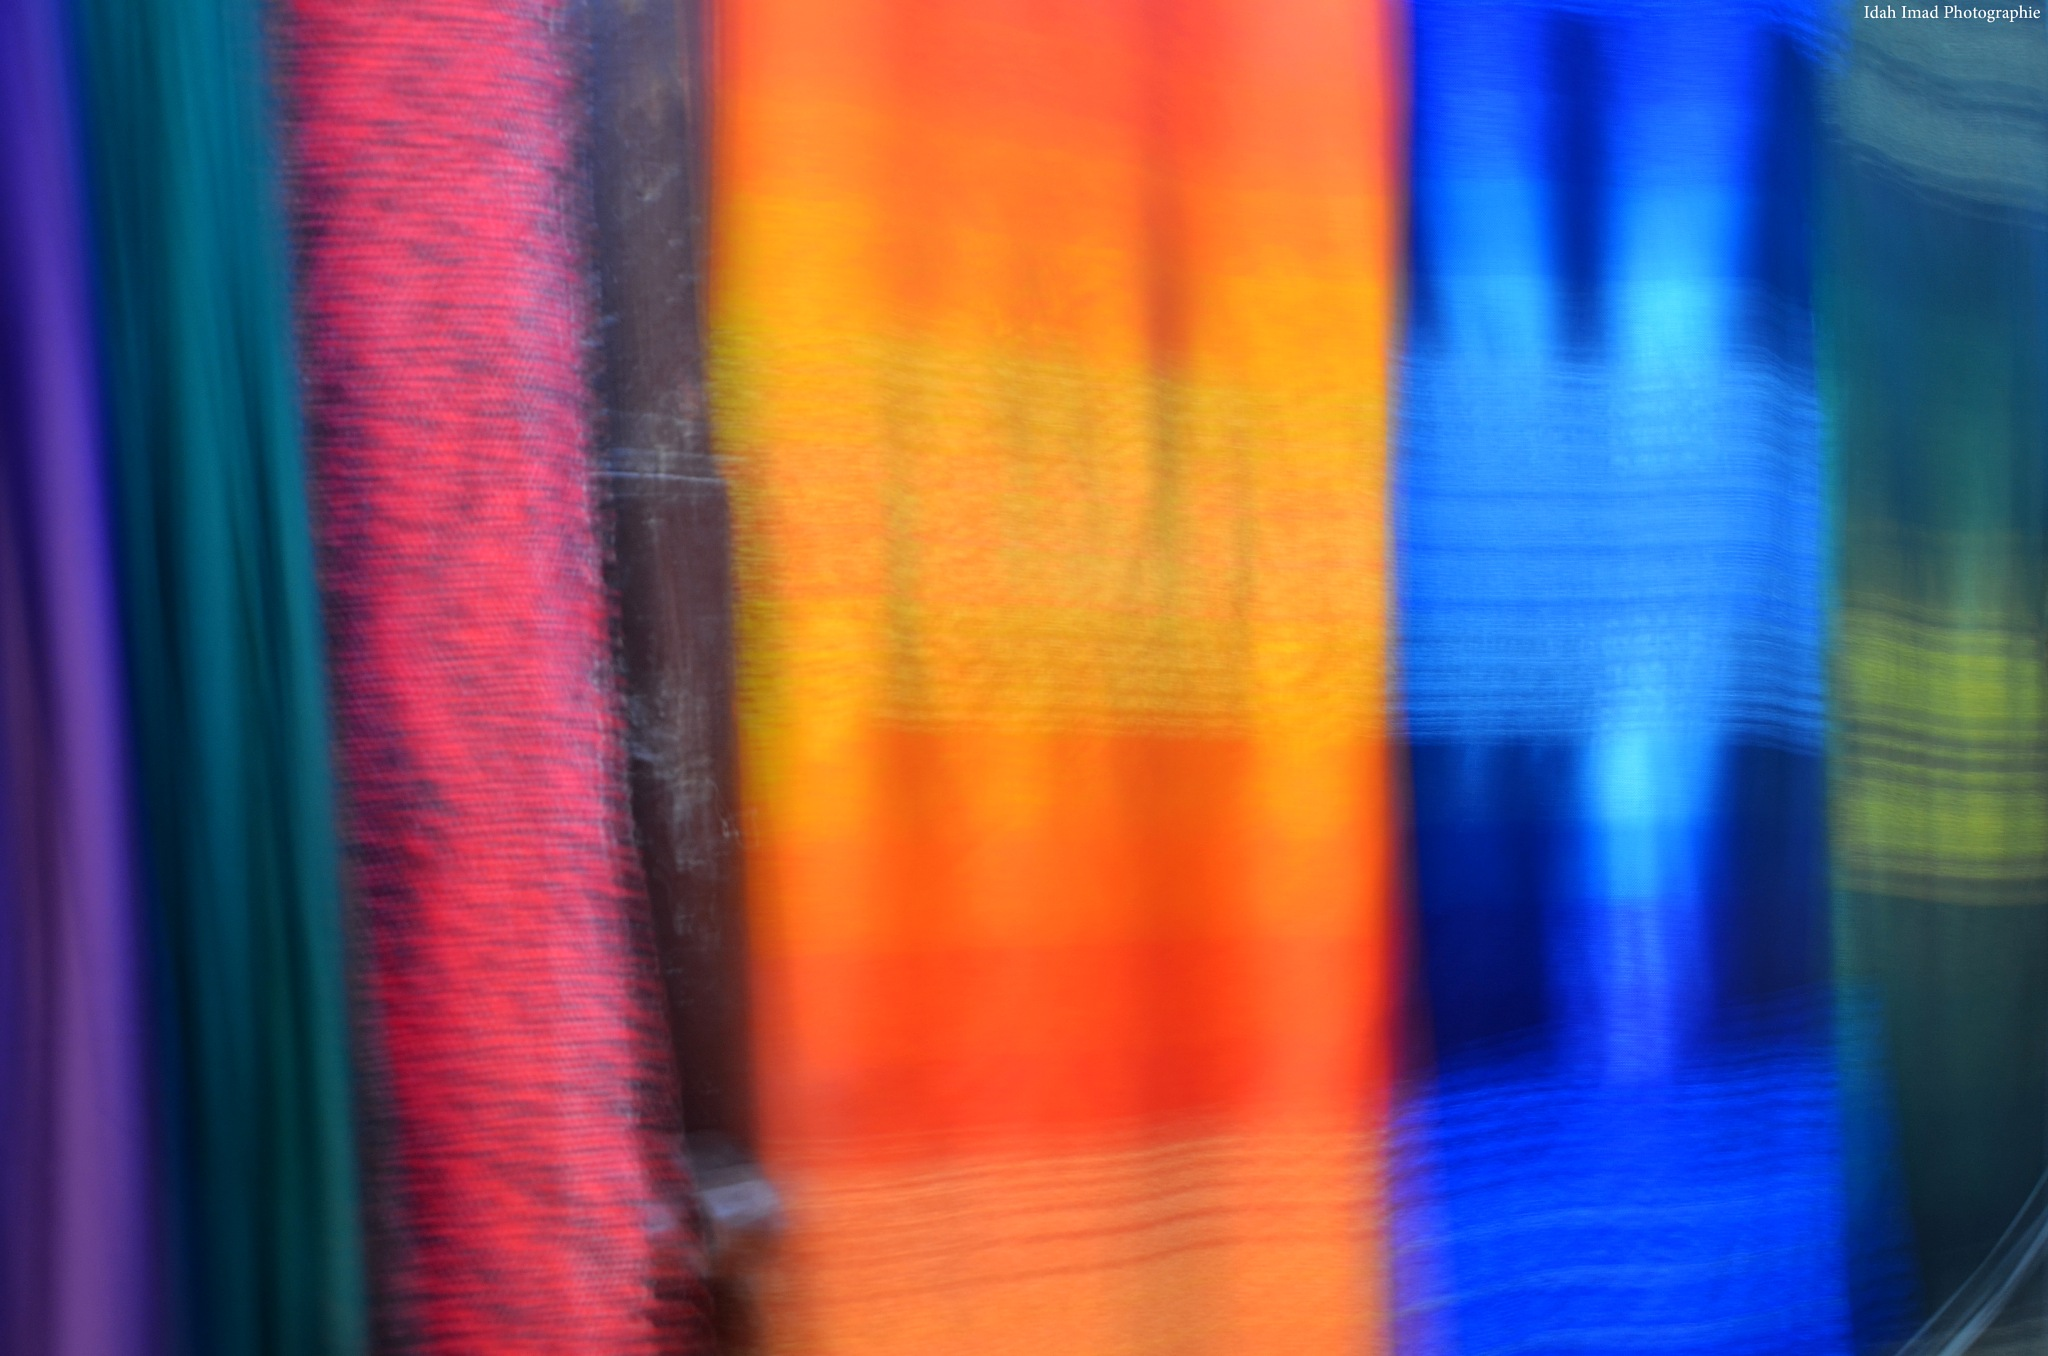 Abstract Color by idahimad